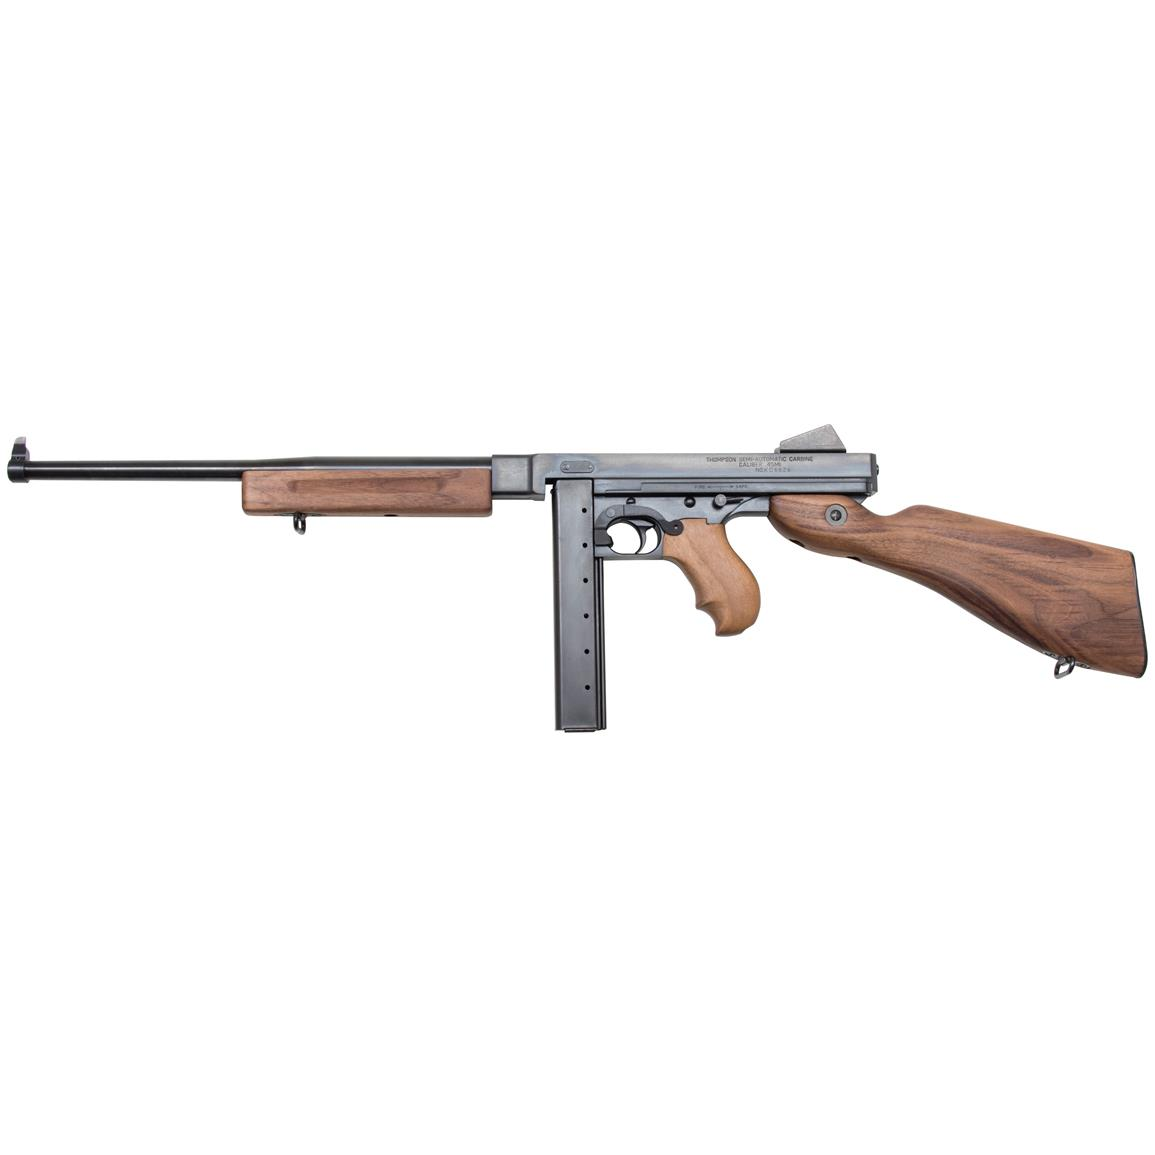 "Auto-Ordnance Thompson M1, Semi-Automatic, .45 ACP, 16.5"" Barrel, 30+1 Rounds"